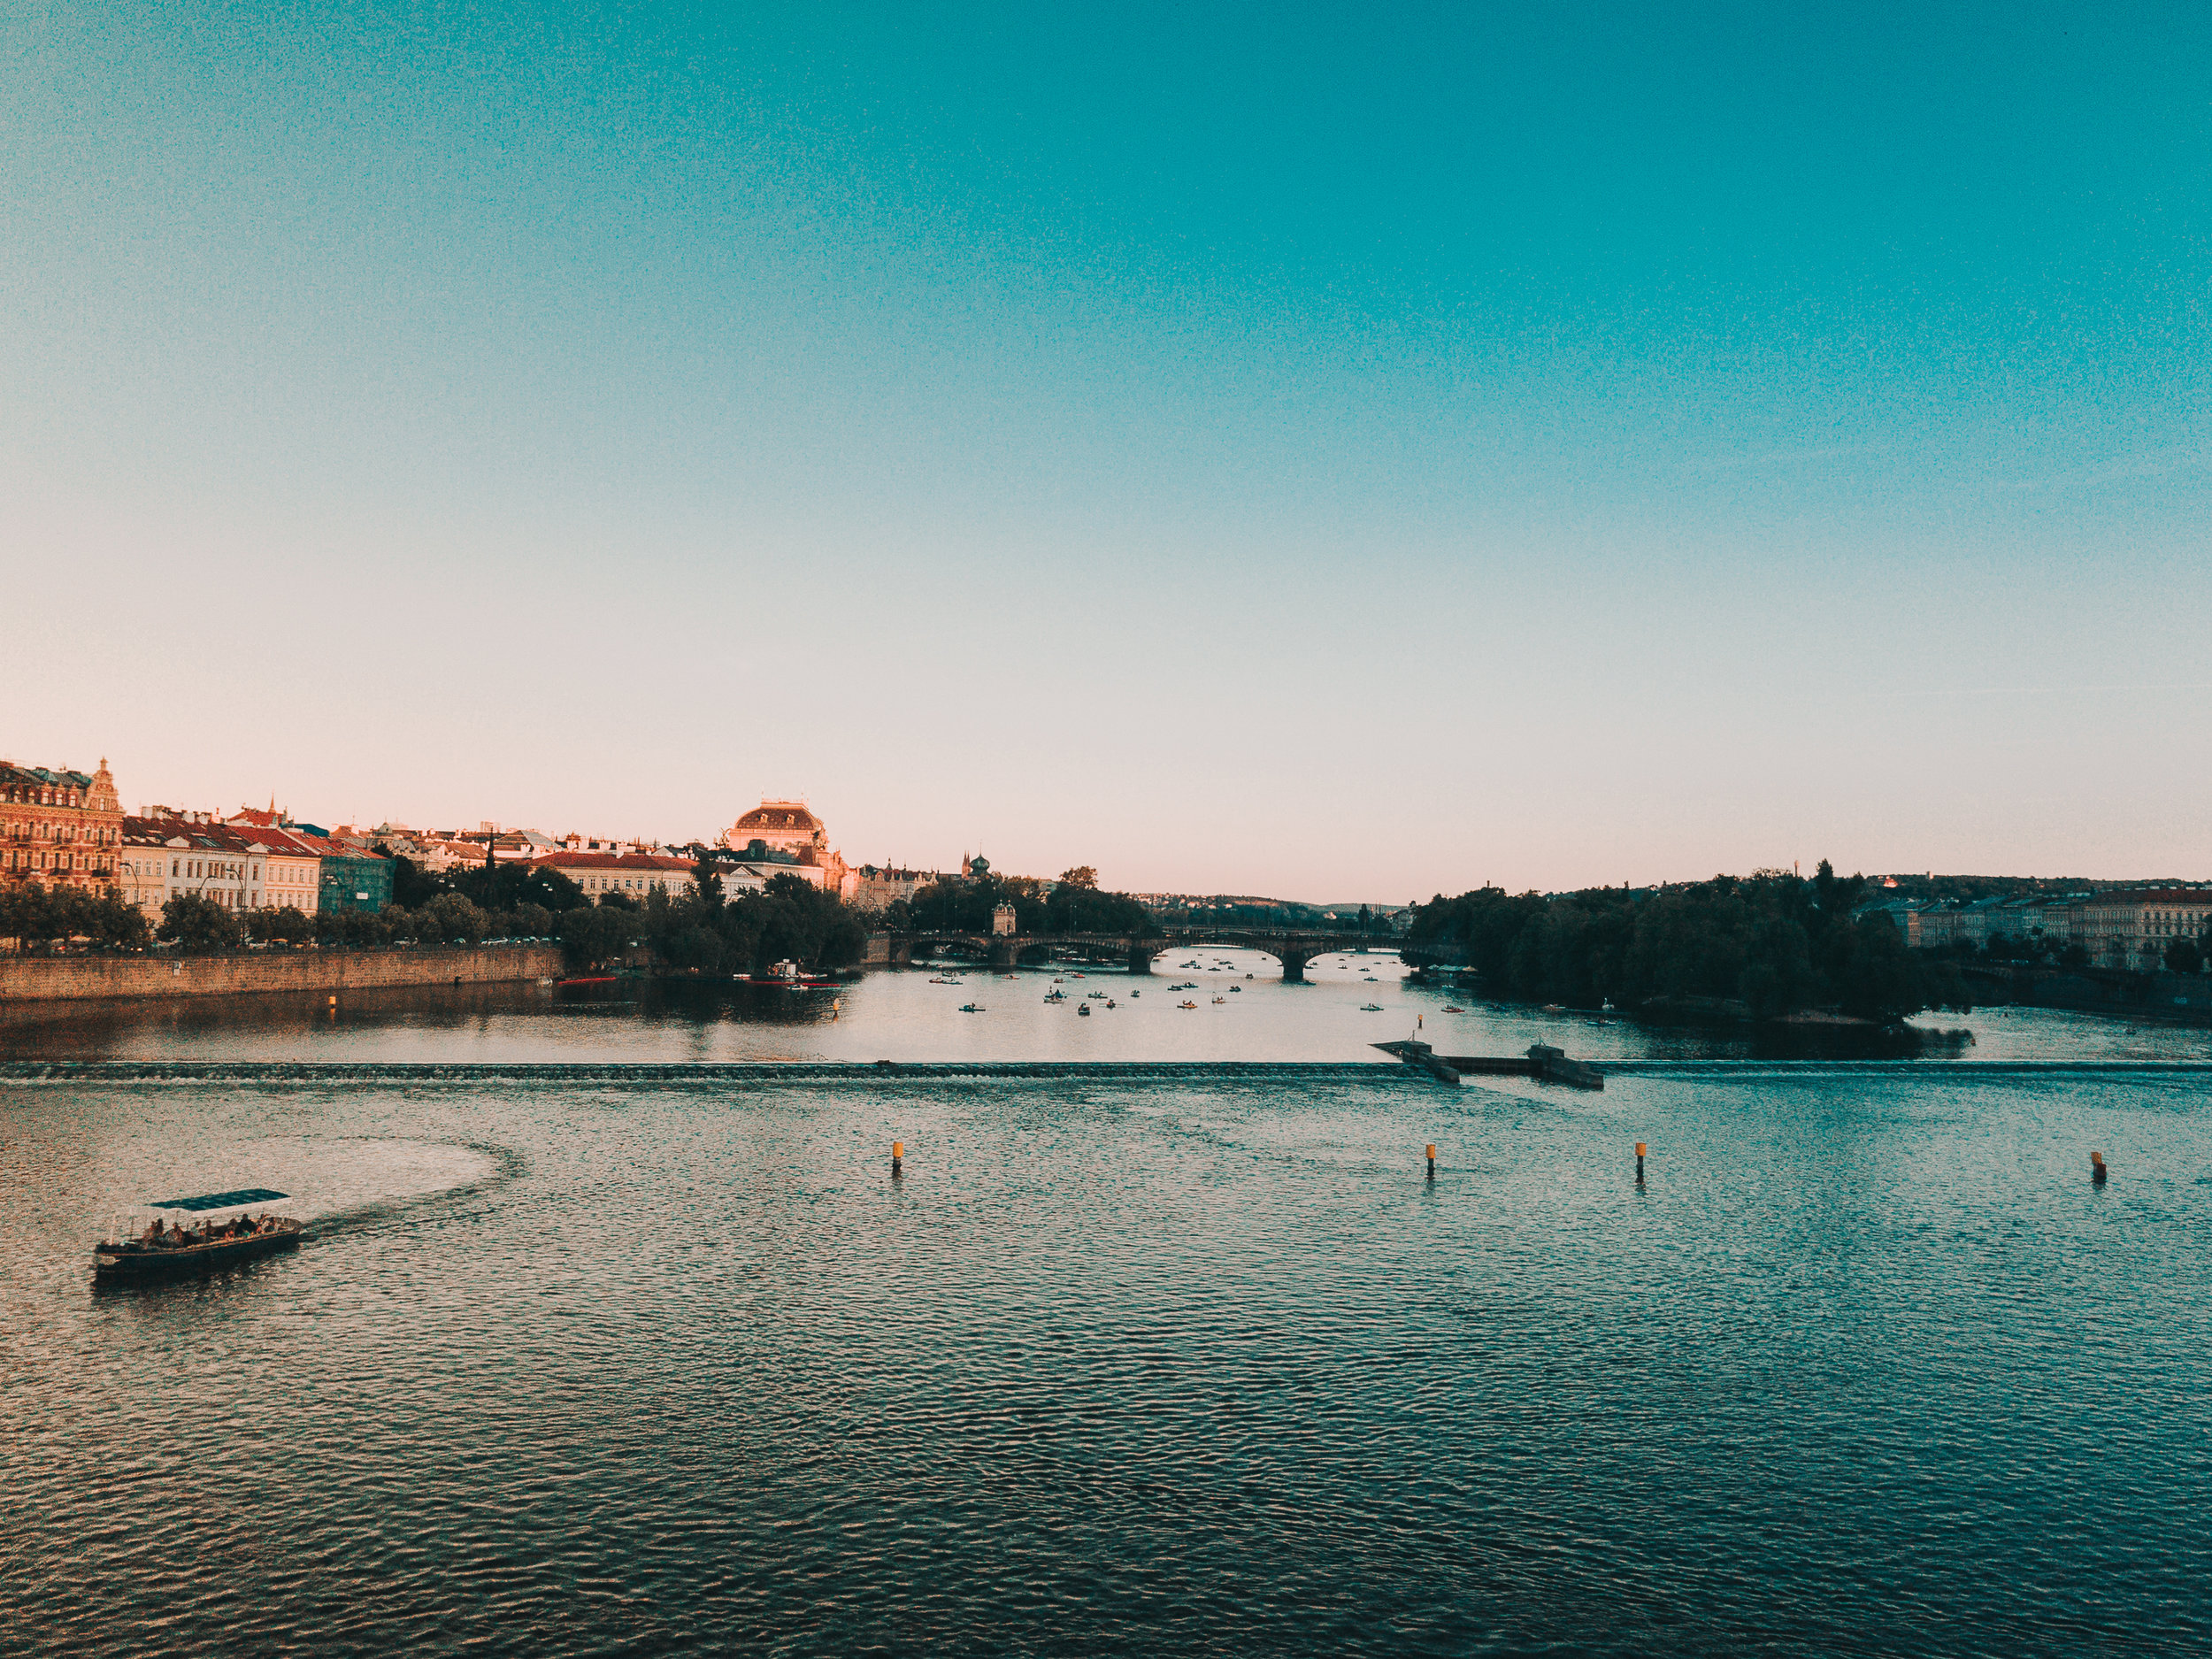 Discover Prague With bitplay 2017- iPhone 7 Plus - bitplay Wide Angle - Yes! Please Enjoy-17.jpg